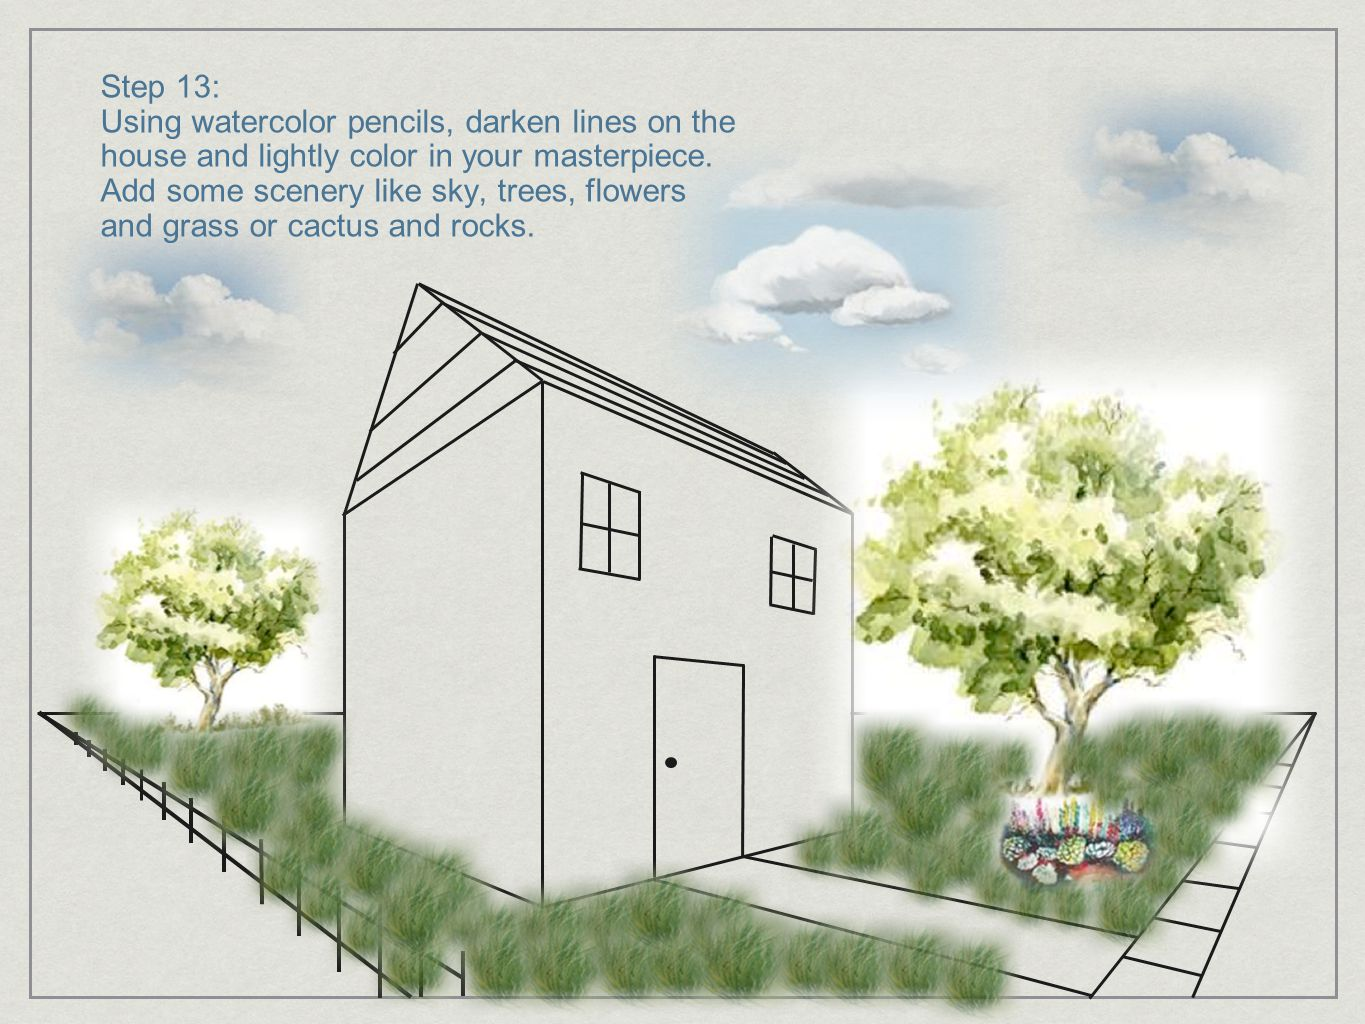 Step 13: Using watercolor pencils, darken lines on the house and lightly color in your masterpiece.